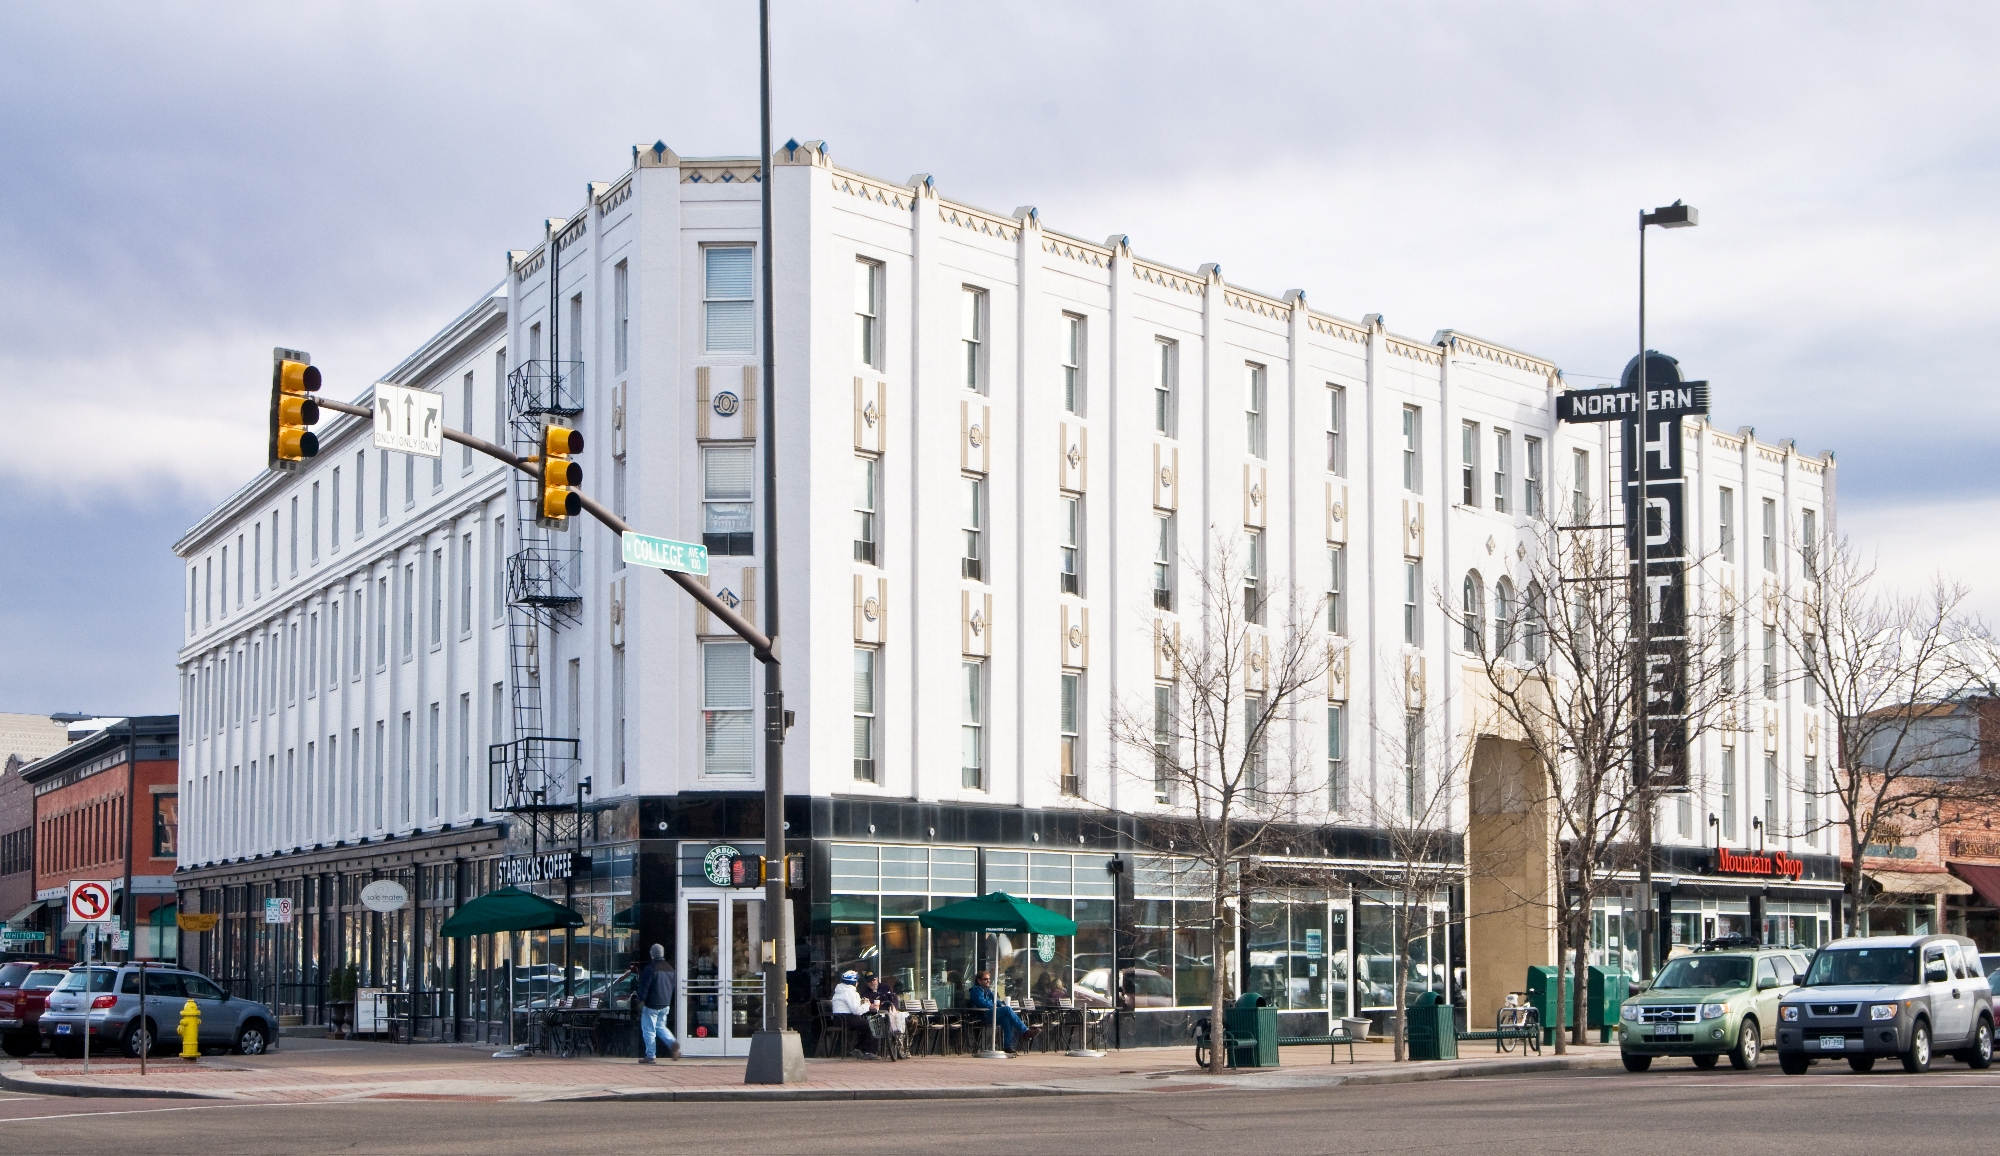 The Northern Hotel in Fort Collins, the original site of the Old Colorado Brewing Co.